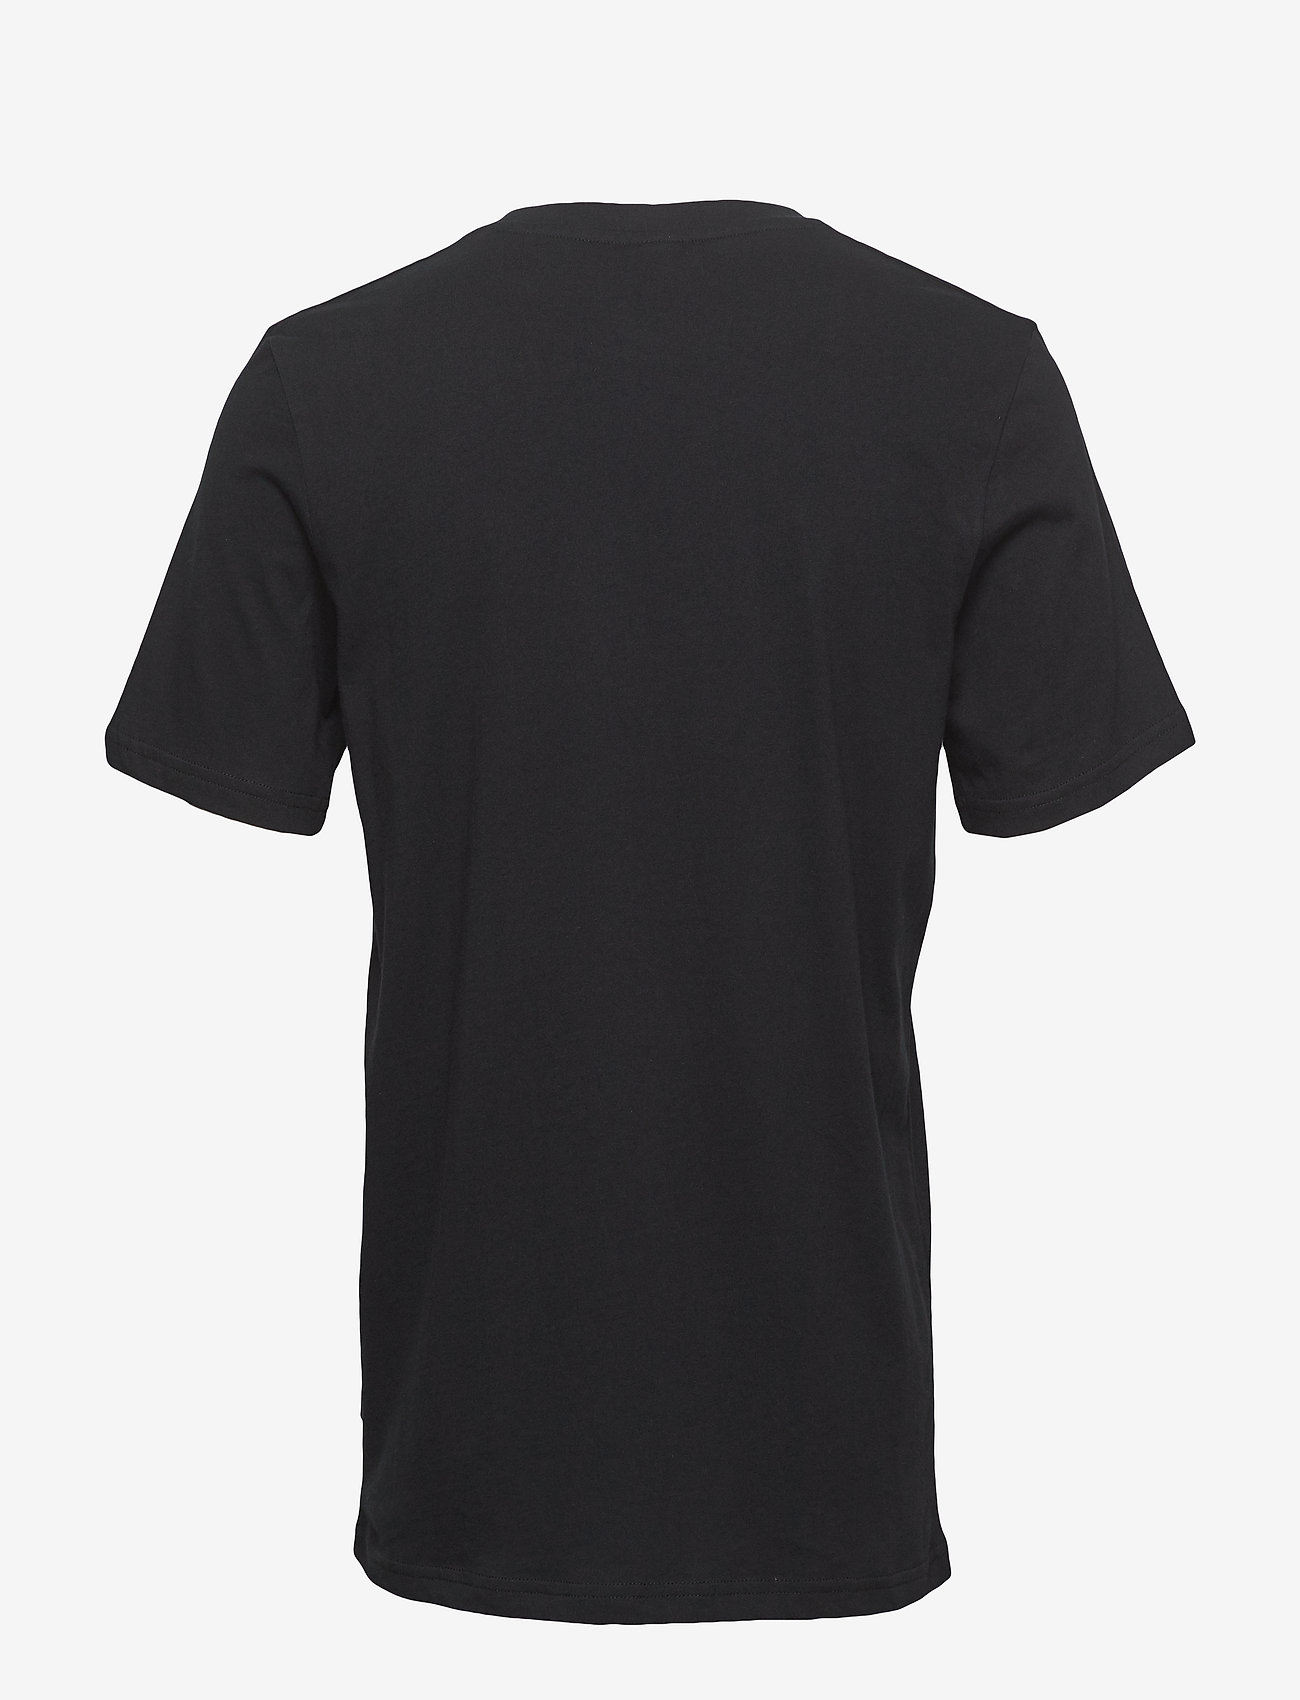 Scotch & Soda - Cotton tee with wider neck rib - t-shirts basiques - black - 1